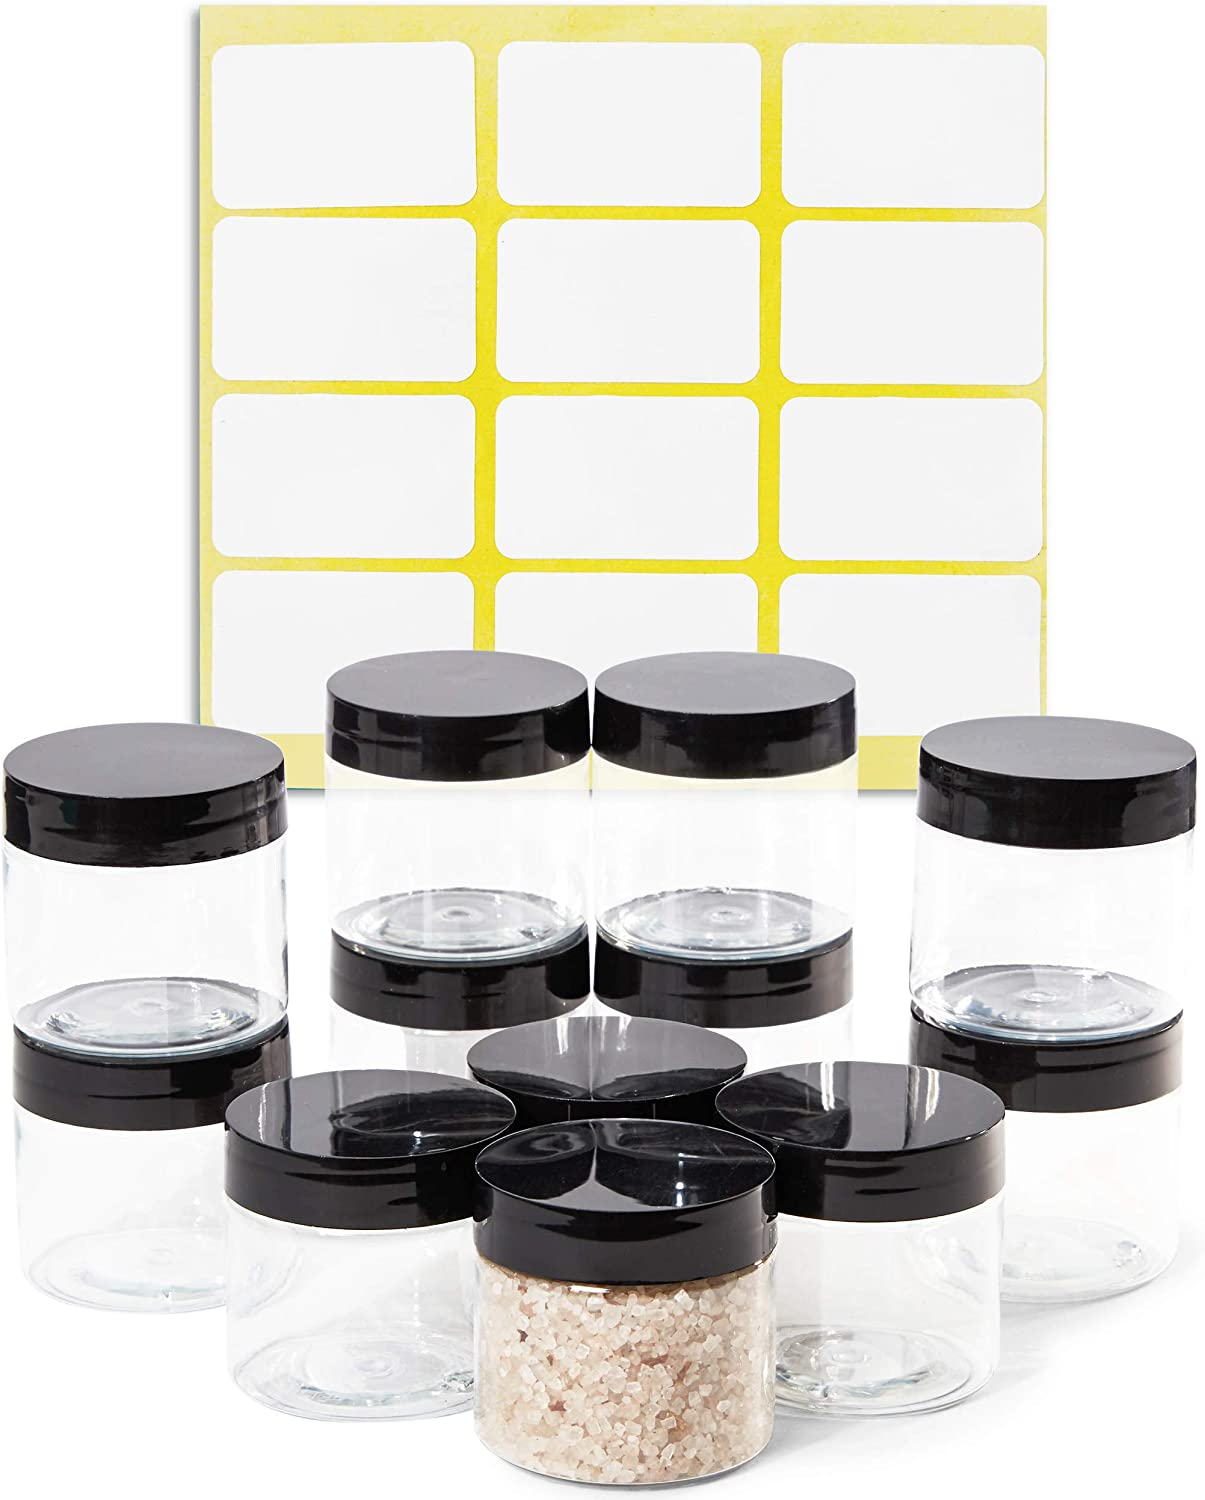 Clear Round Plastic Jars with Black Lids and Labels (2 oz, 12 Pack)